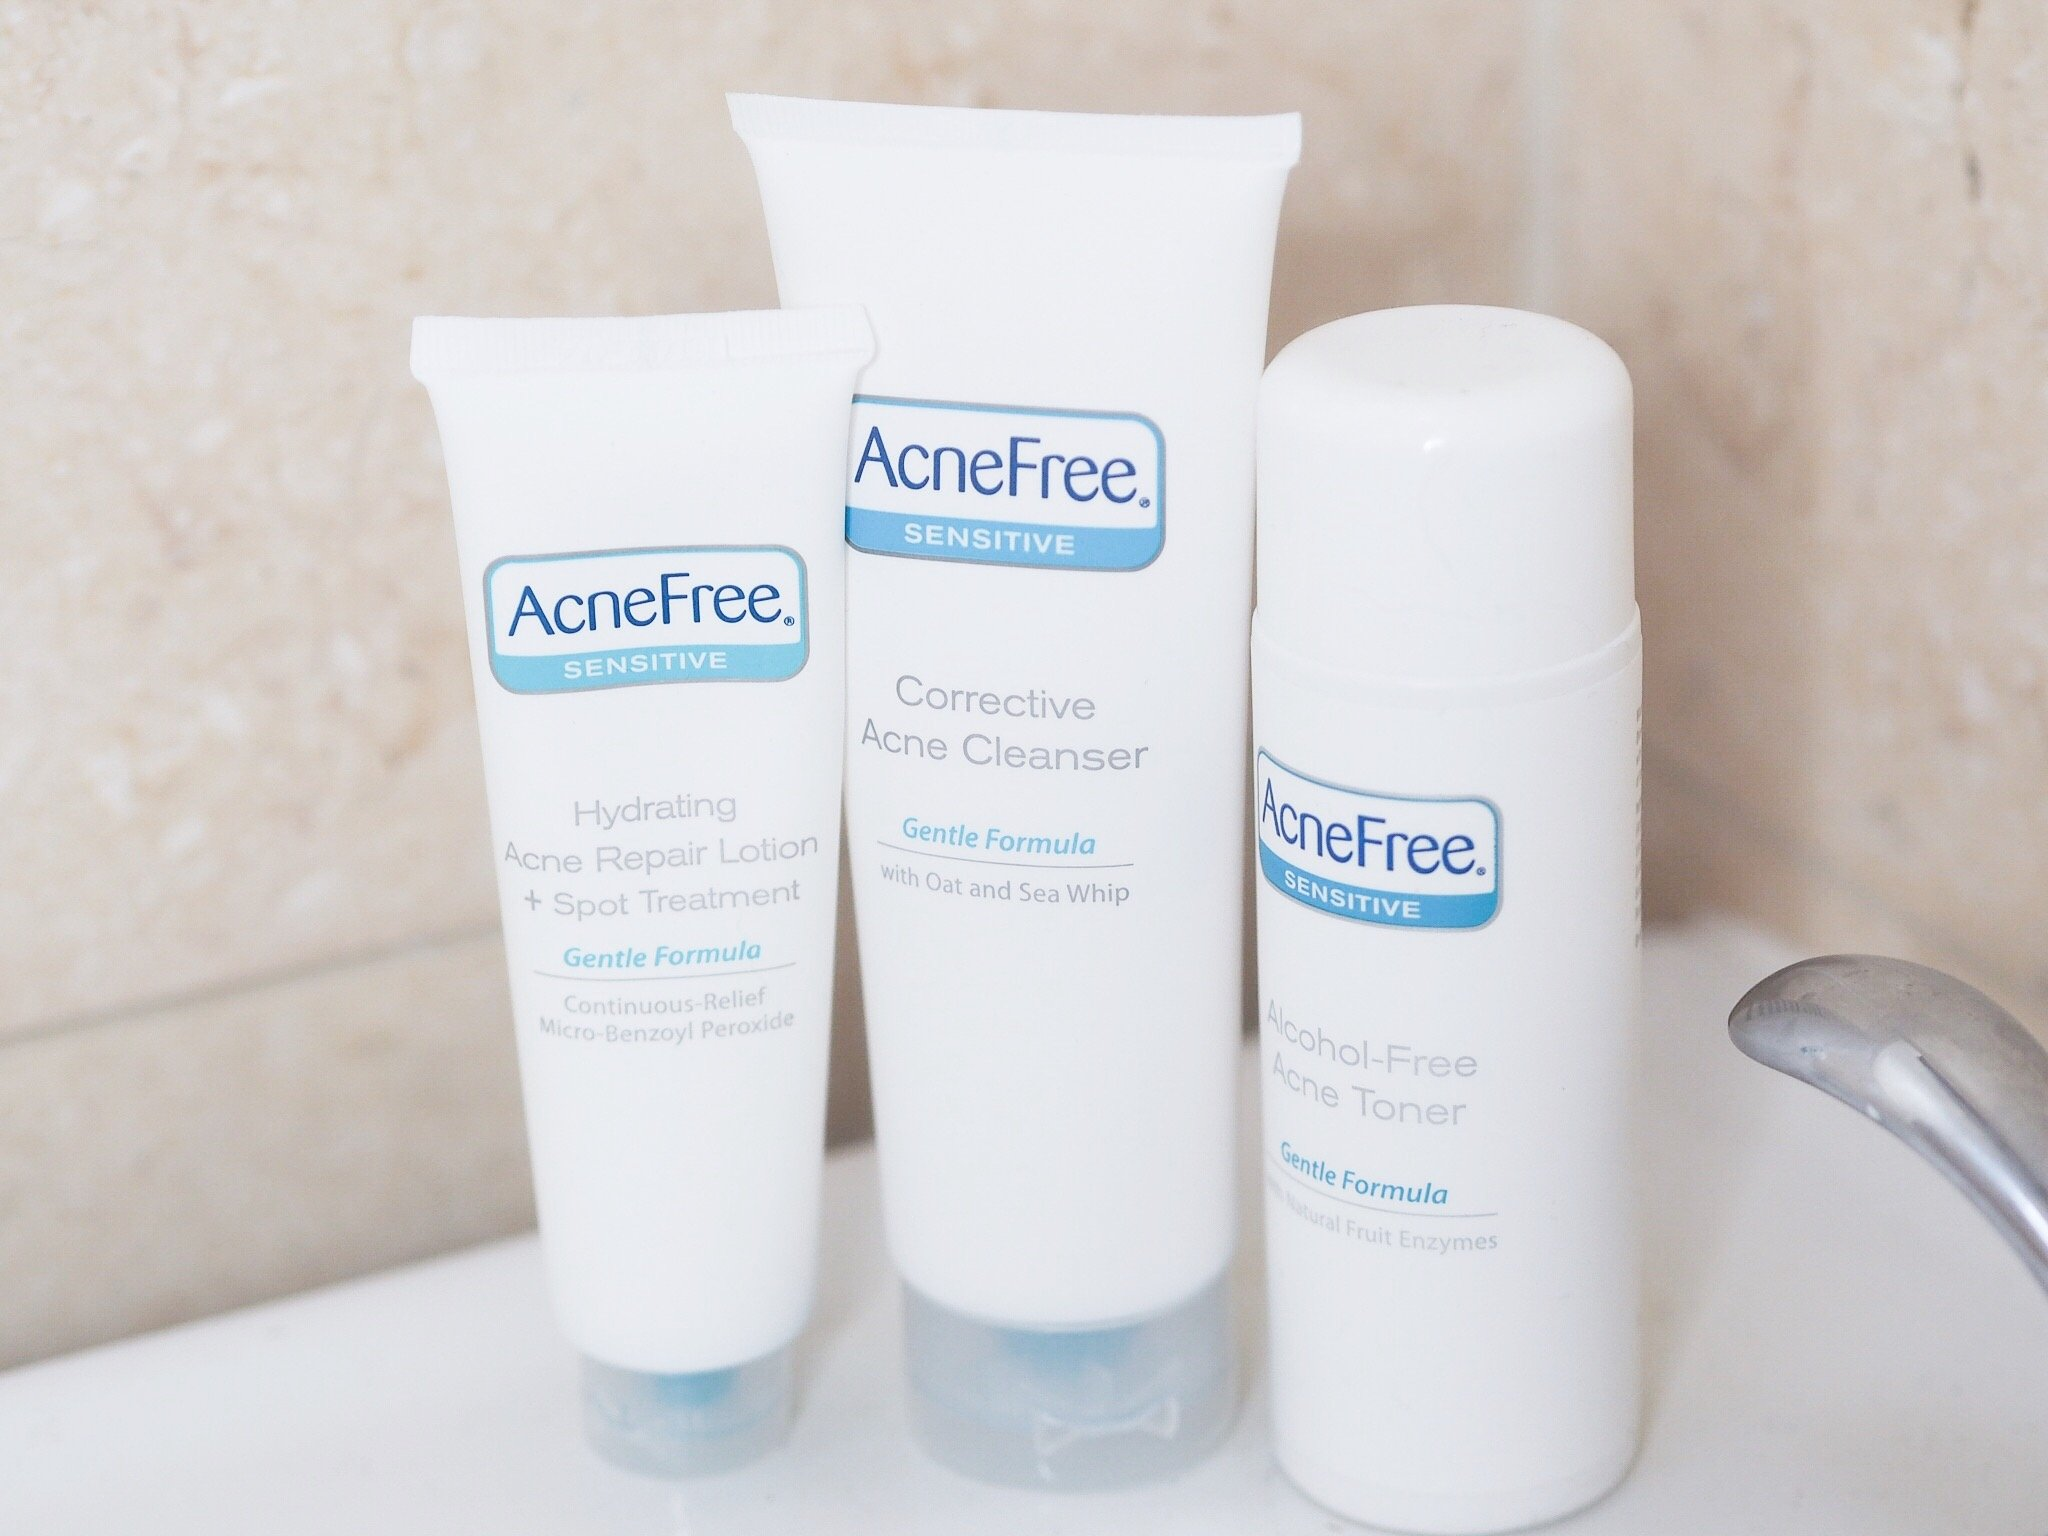 Go BARE this summer with AcneFree!